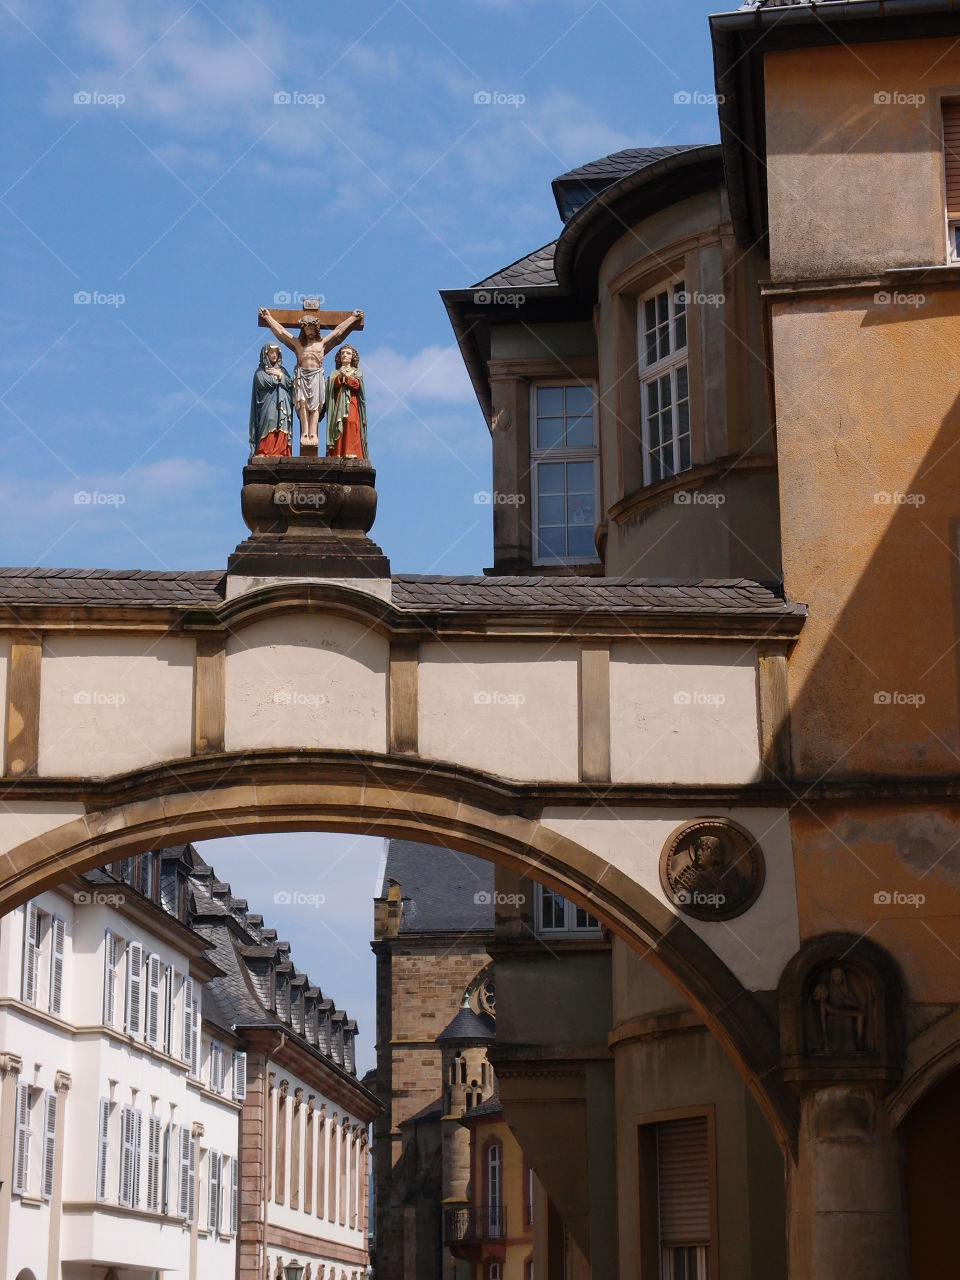 A statue of a crucified Jesus on top of a beautiful arch all against a bright blue sky in Europe on a sunny summer day.